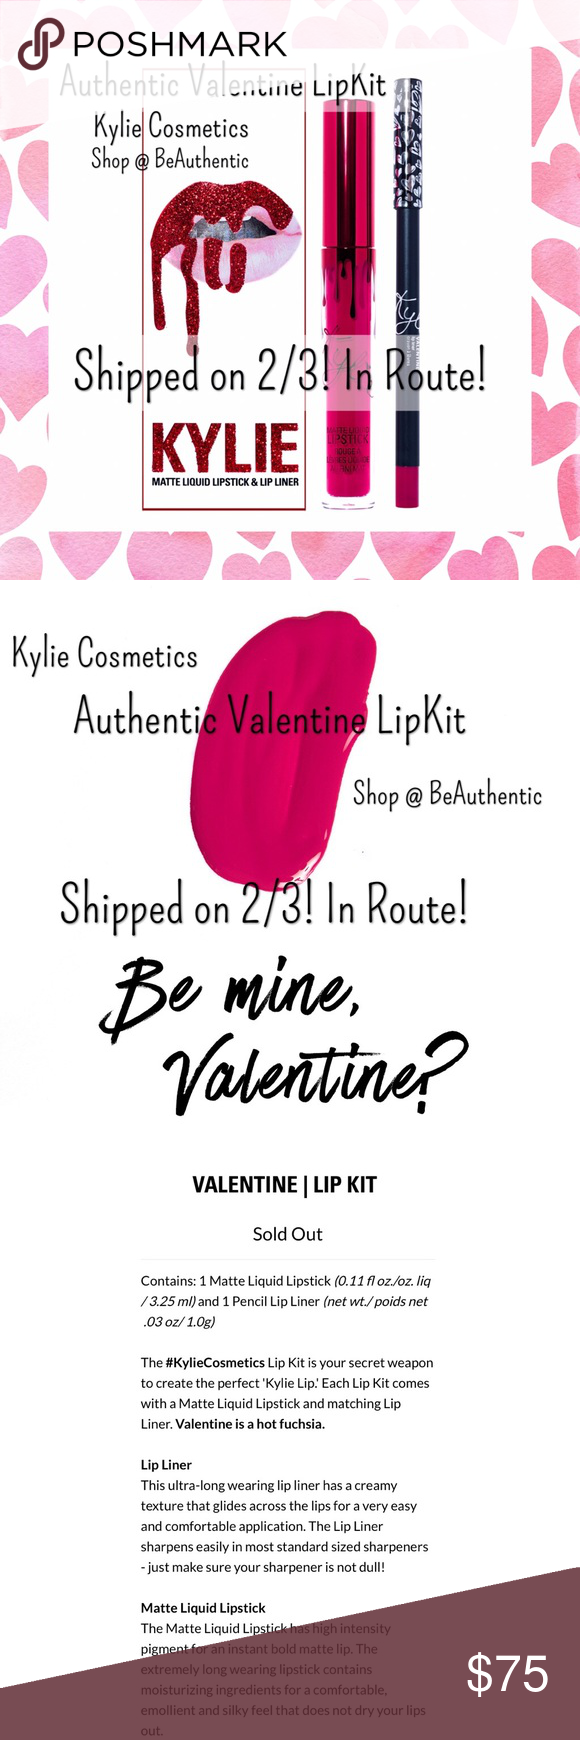 dec2c27a94b 💋In stock! Authentic Kylie Valentine LipKit 🆕💋Authentic Kylie Valentine  kit! Just